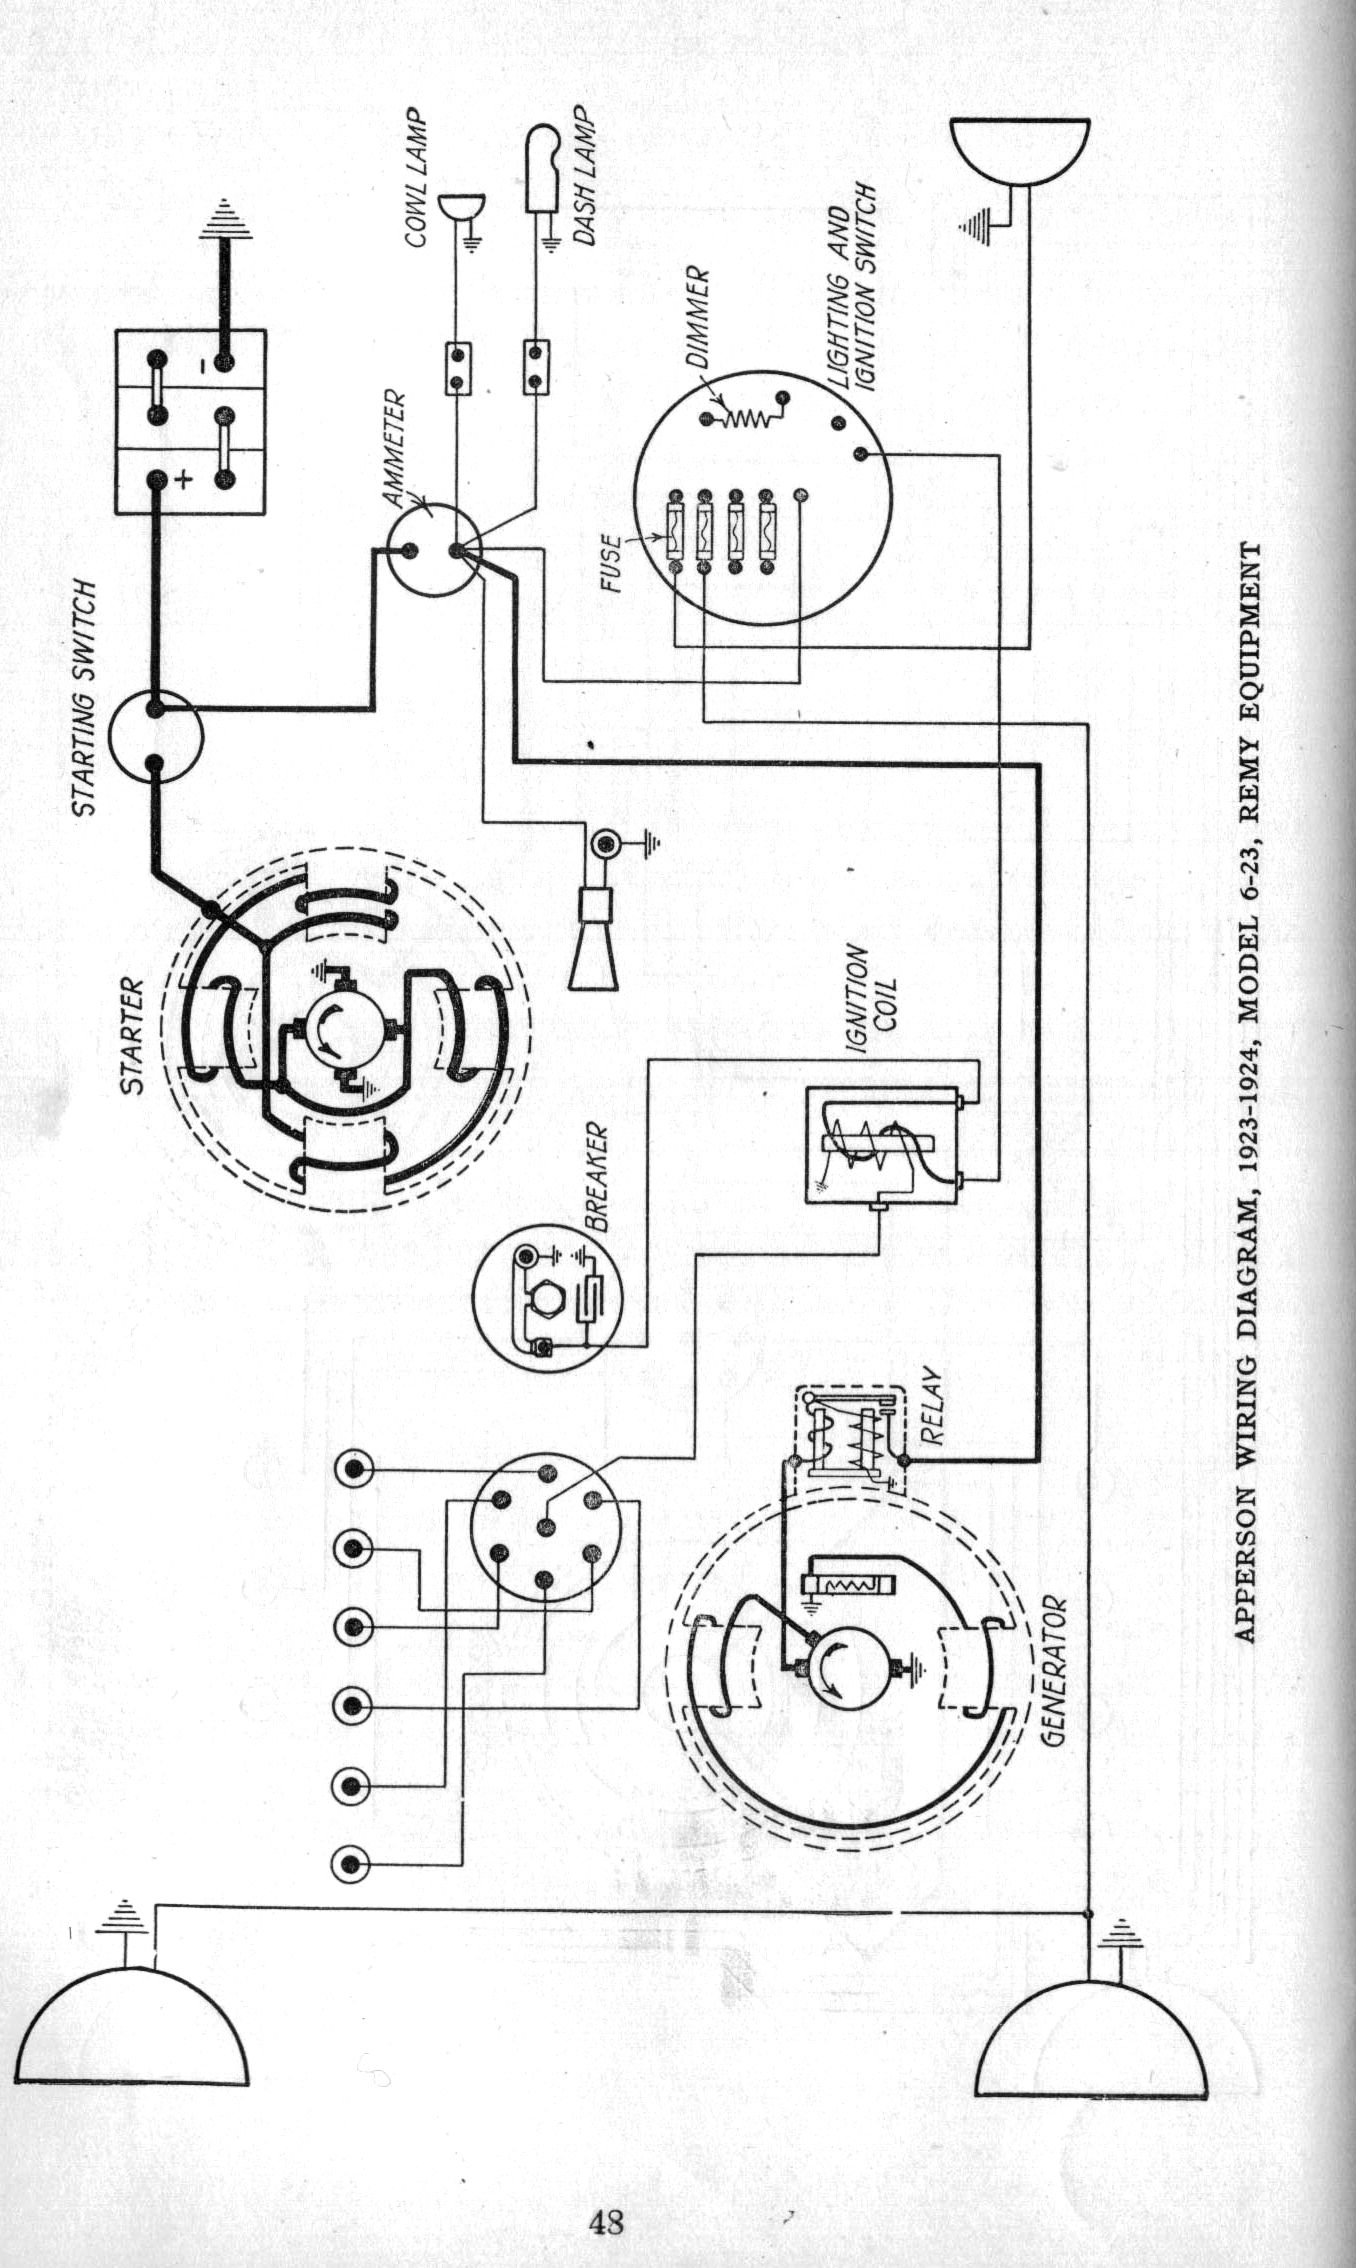 23 24Apperson Left early 1920's apperson and buick wiring diagrams the old car 2010 Buick Lacrosse Wiring-Diagram at mifinder.co